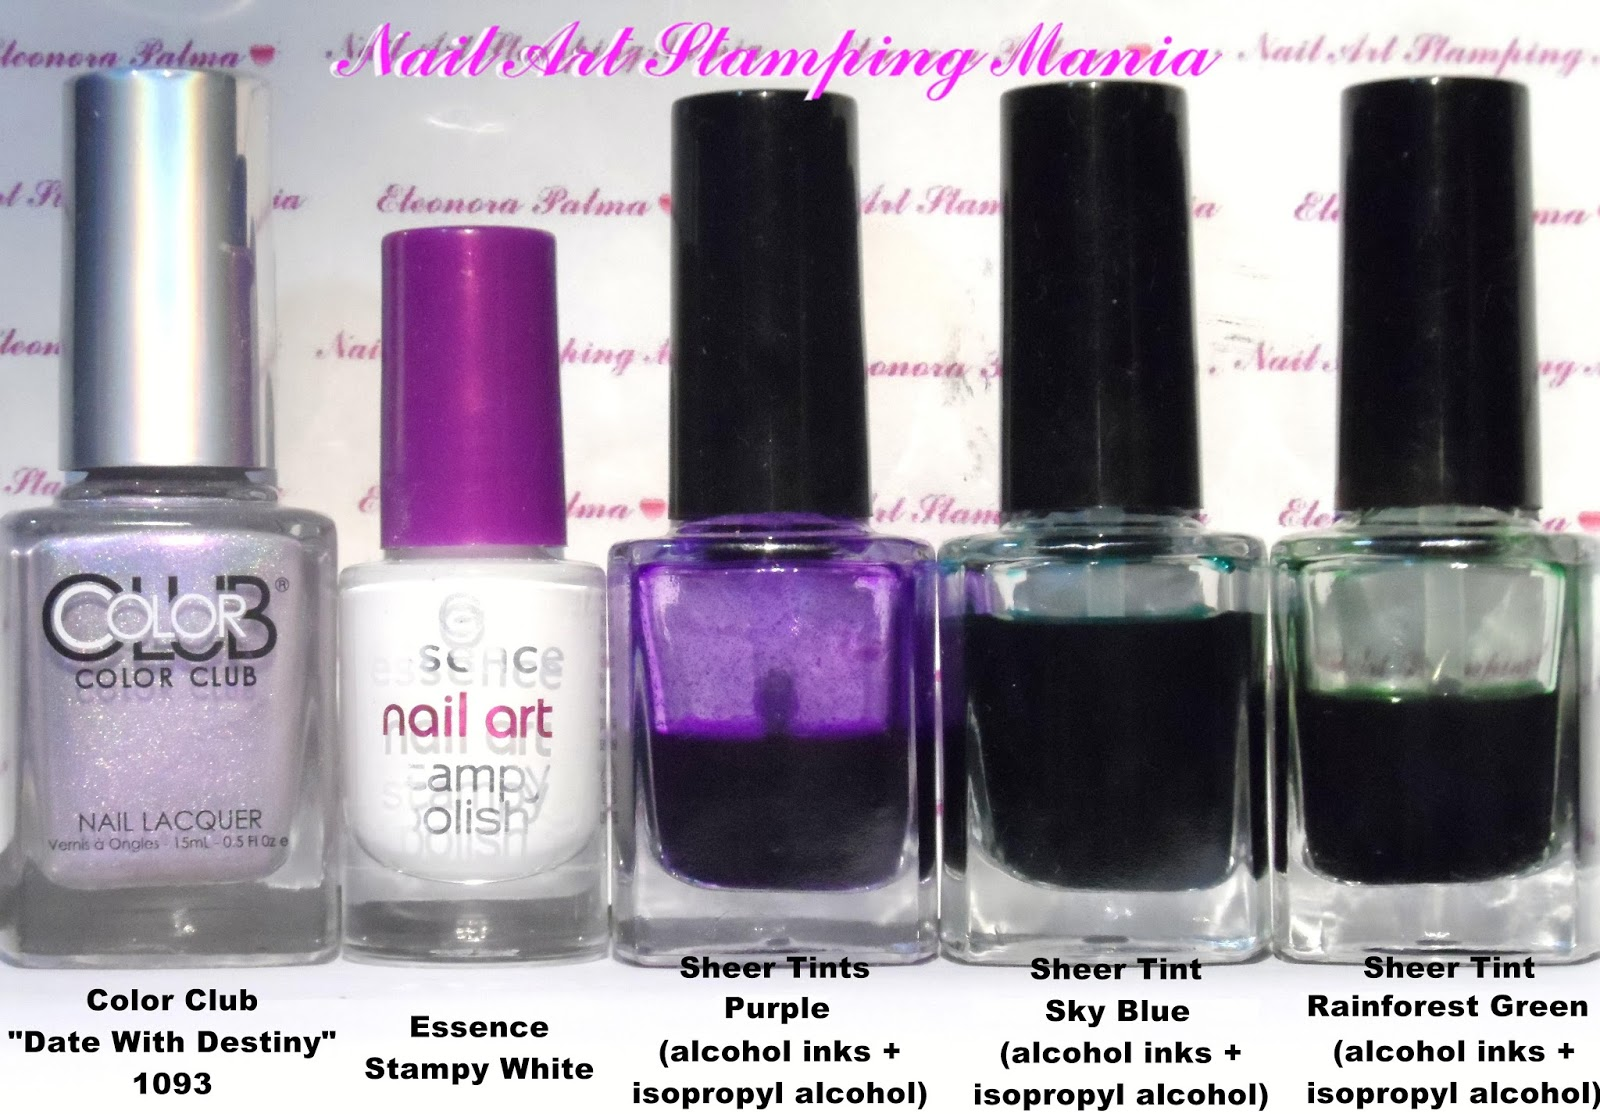 Nail Art Stamping Mania: How to Make your Own Sheer Polishes With ...